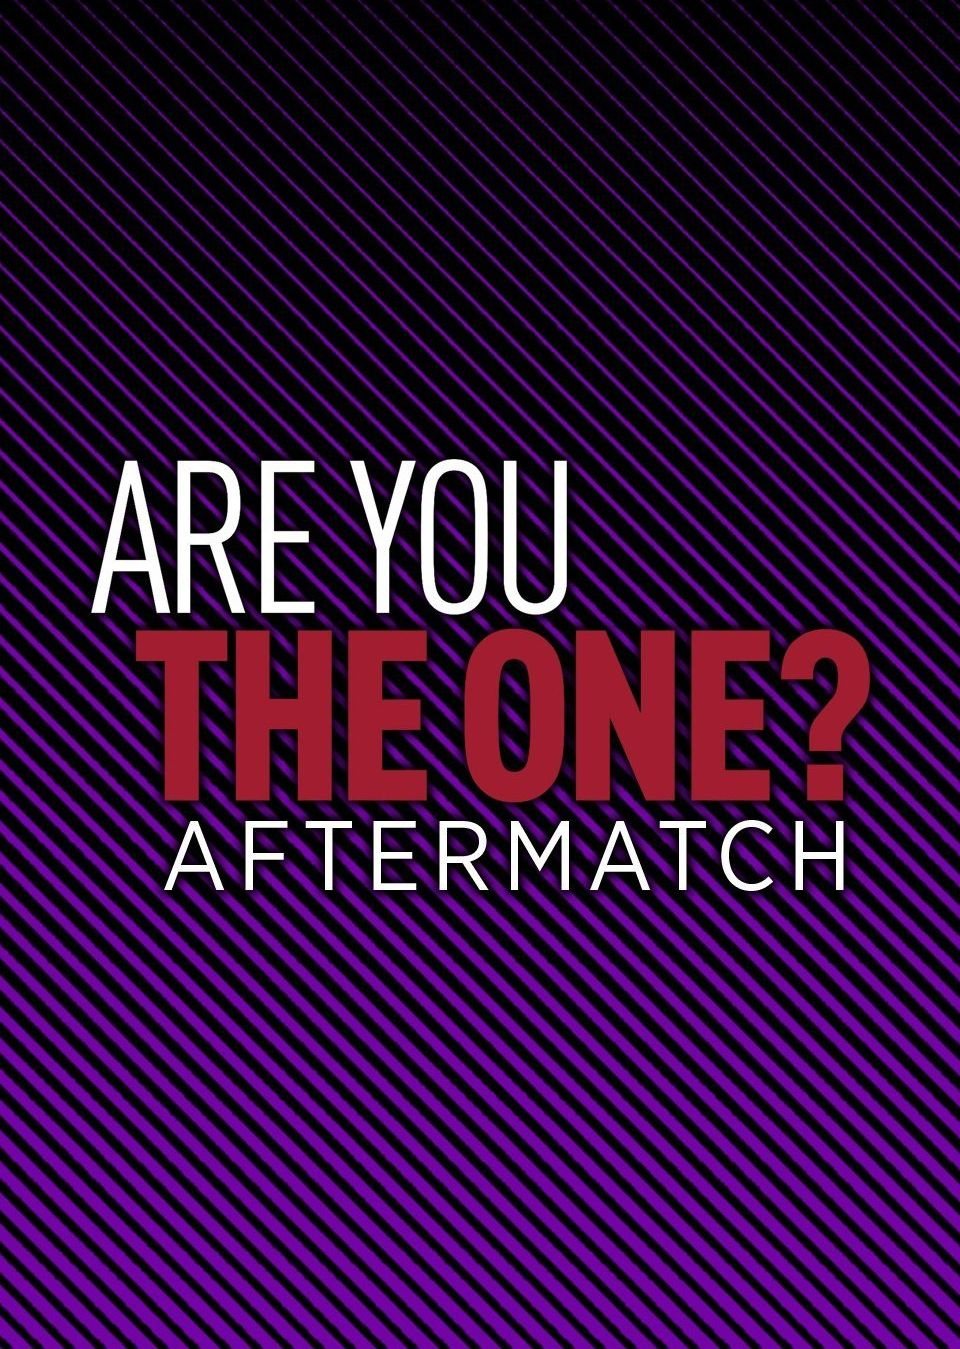 Are You the One: Aftermatch ne zaman